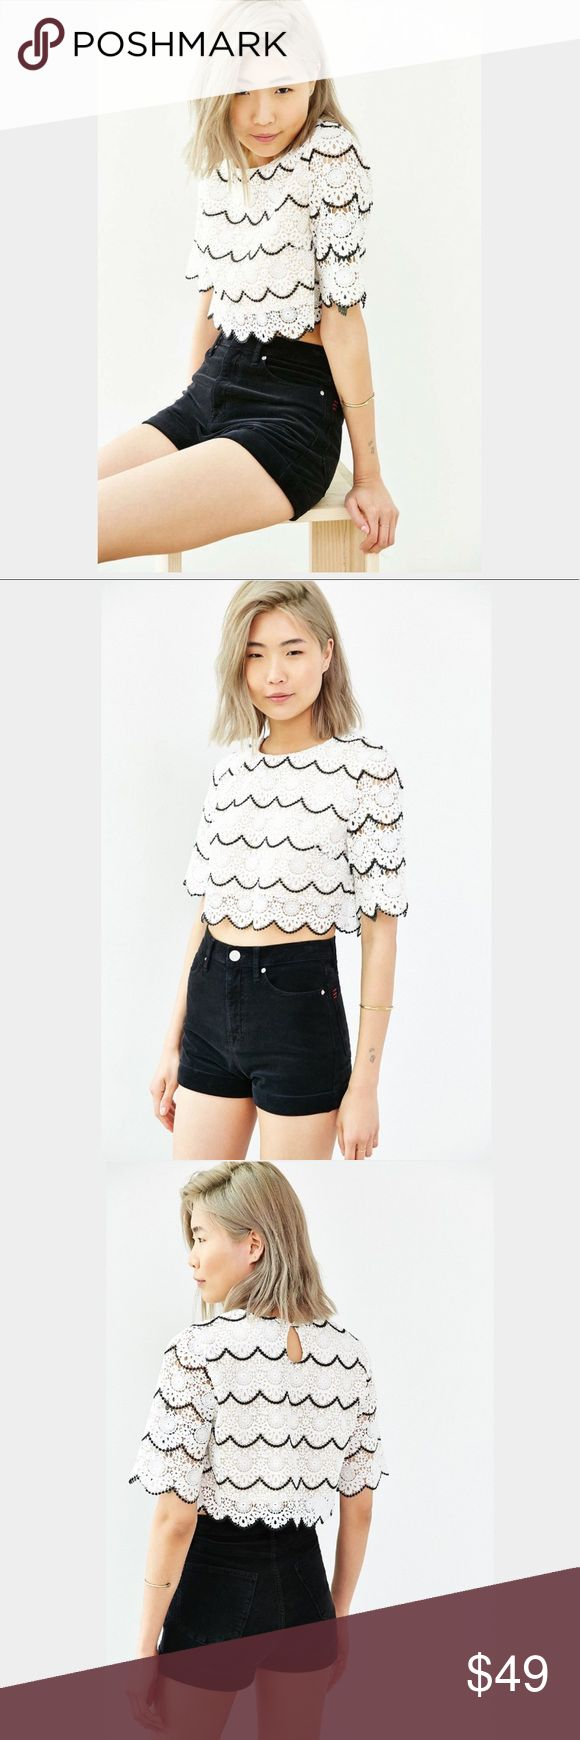 Sister Jane 🎪 Falcon Wings Top Opt for a playful silhouette in this scallop layered lace top. With contrast black edging for stand-out details. 100% Polyester. Keyhole opening at back with sweet white button closure. Demi Lovato's a huge fan too! Cheers! Sister Jane Tops Crop Tops